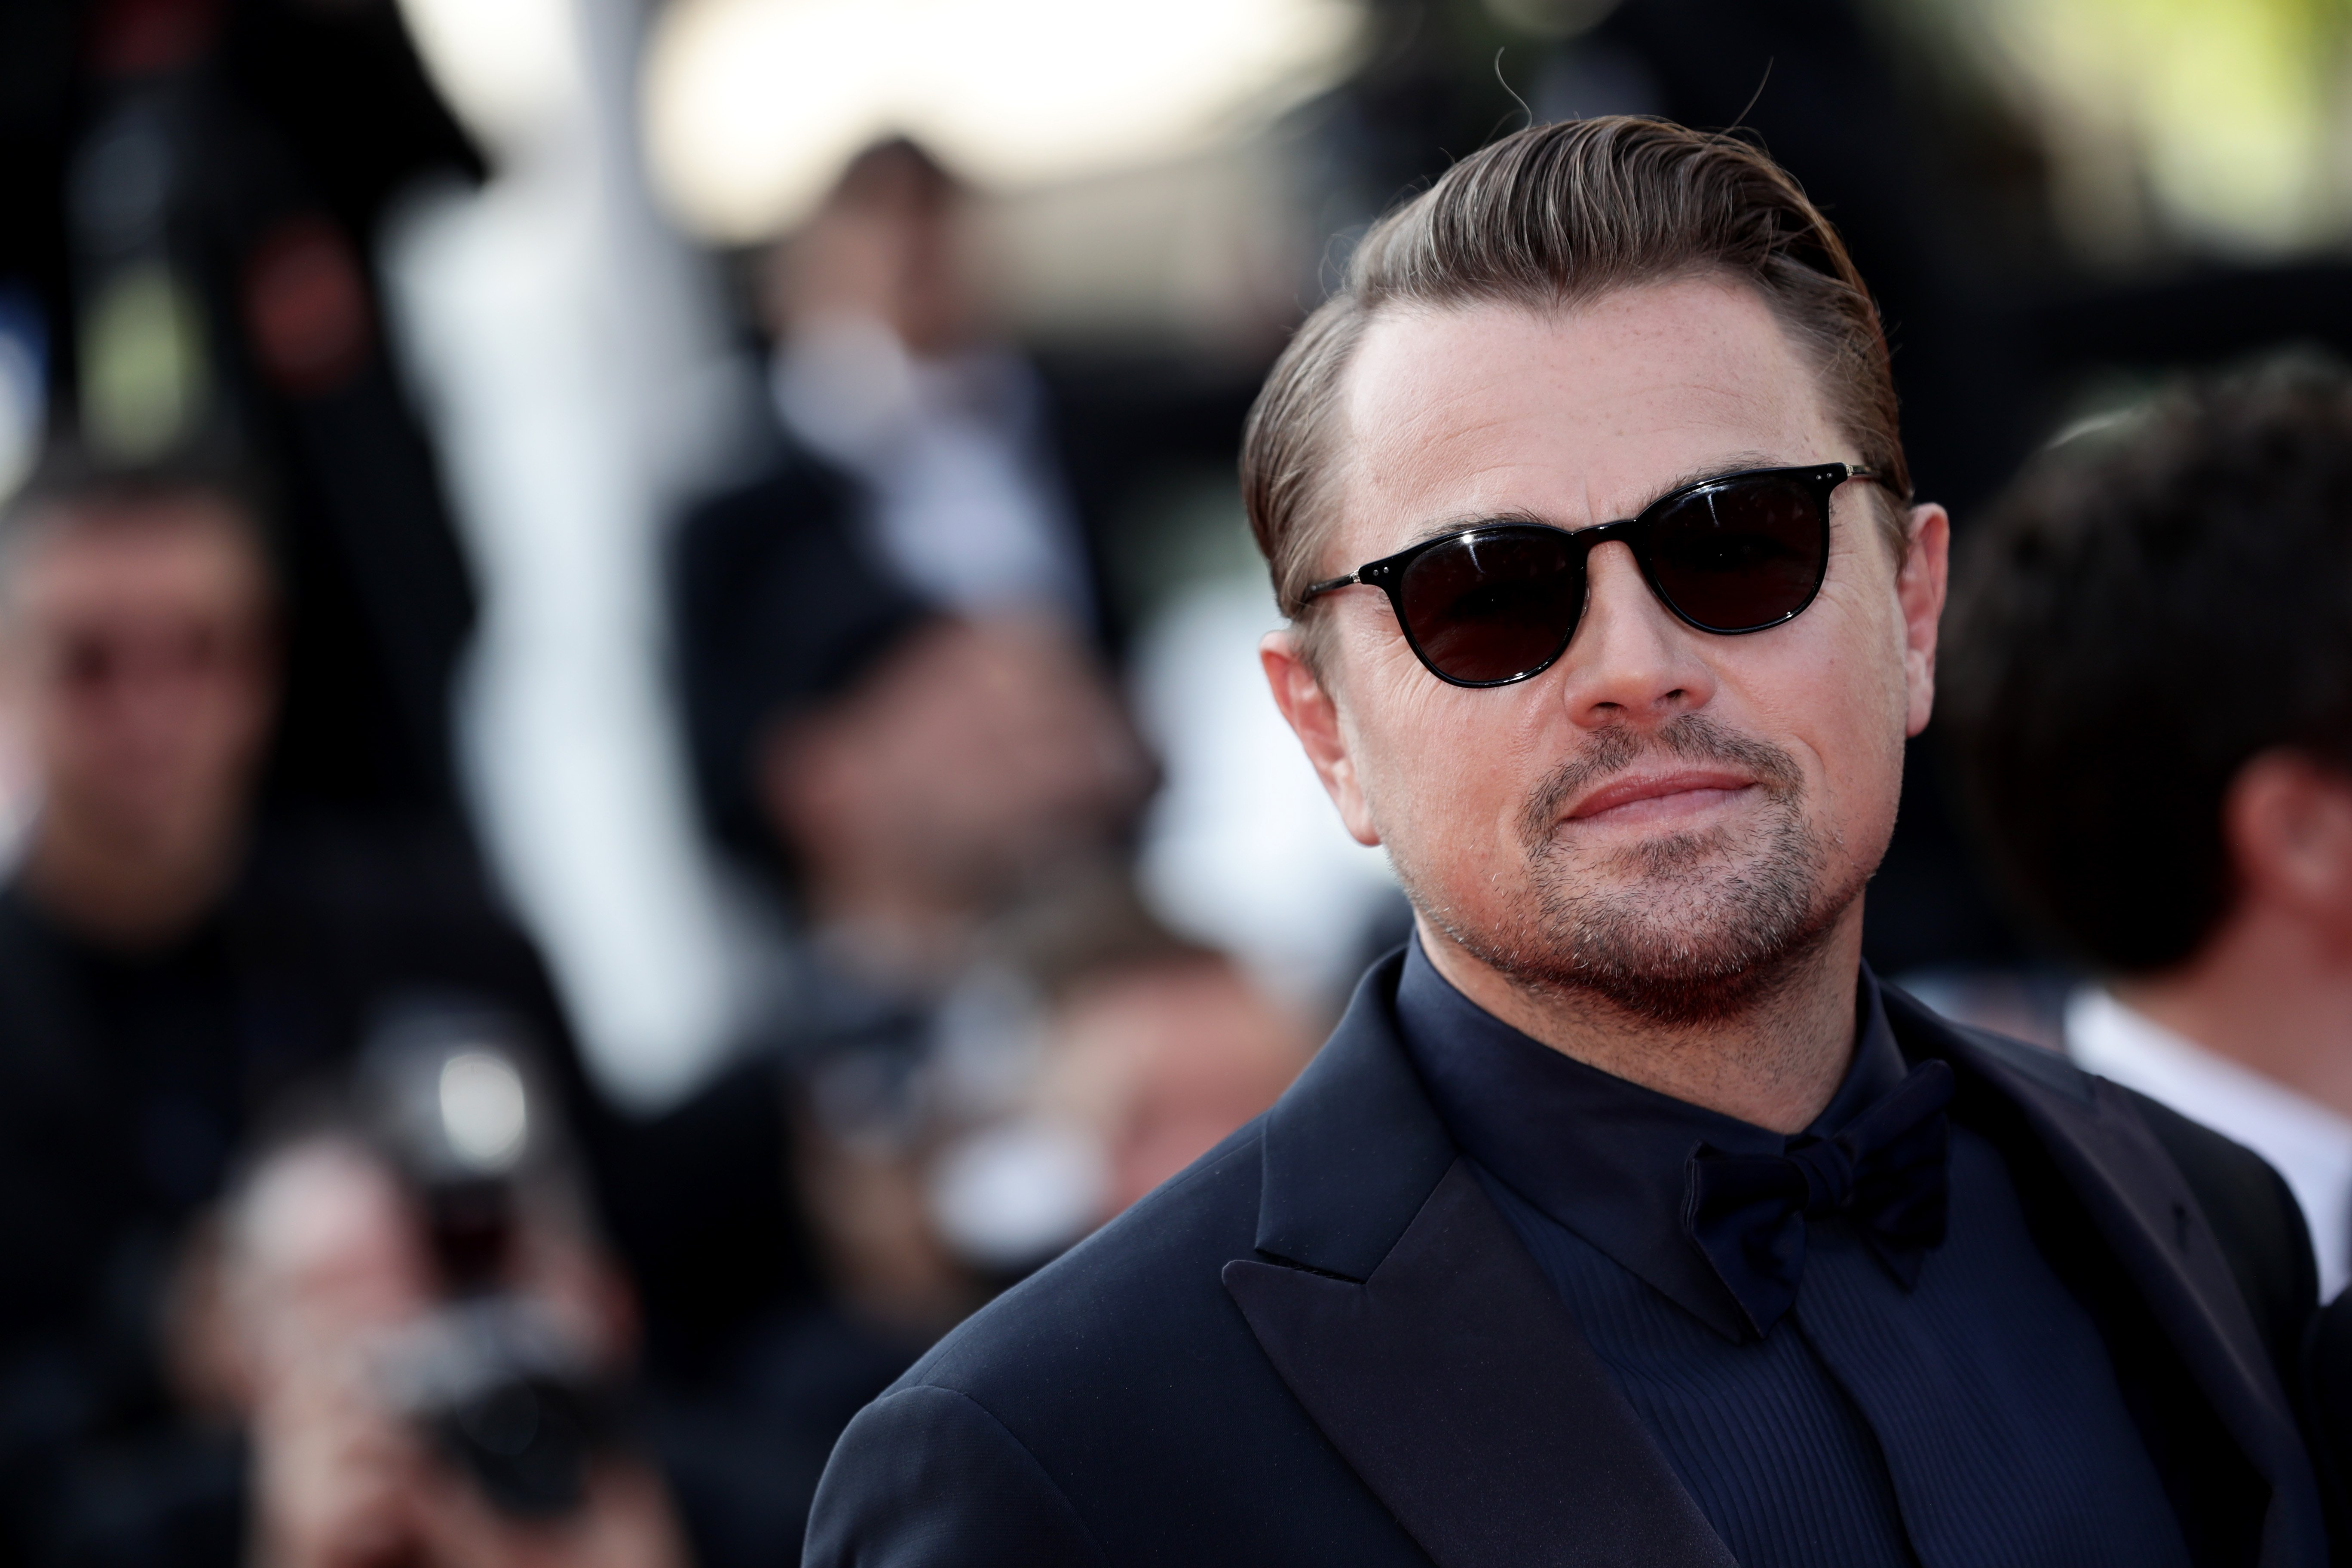 Leonardo DiCaprio attends the screening of 'Il traditore' film at the 72nd annual Cannes Film Festival in Cannes, France on May 23, 2019. | Photo: Getty Images